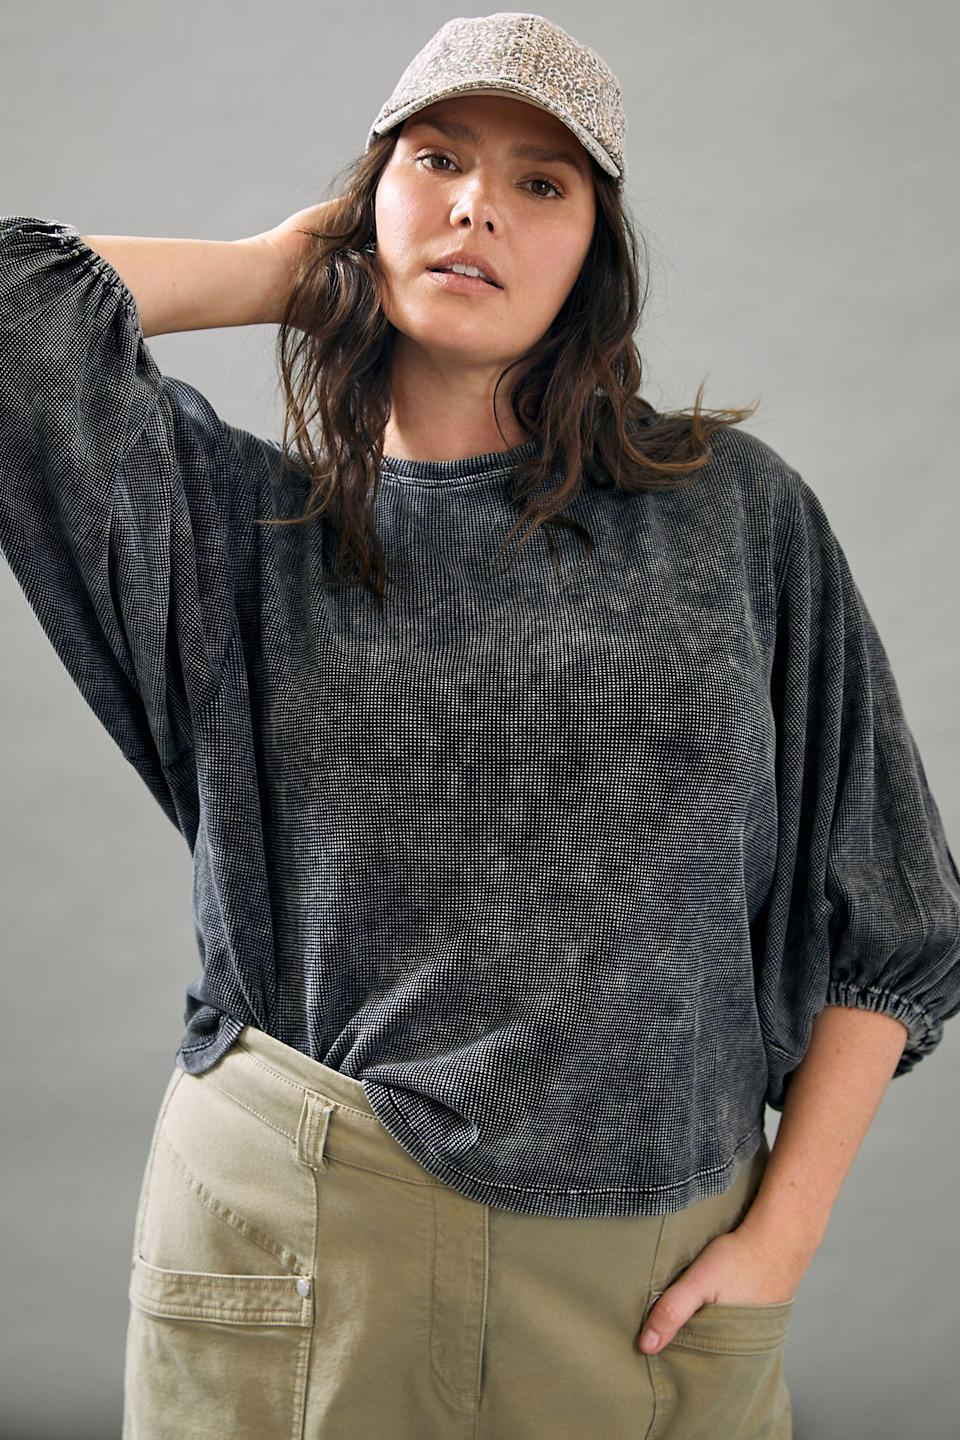 """<h3><h2>Pilcro Washed Waffle Top</h2></h3><br><strong>Available Sizes: XS-3X (Petite Options)</strong><br>A double-duty Pilcro waffle top is comfy enough for lazying around and stepping out on the town. The puffed sleeve adds a level of versatility to the functionality of the garment. Pair with some comfy sweats or your favorite high-waisted denim. <br><br><em>Shop <strong><a href=""""https://www.anthropologie.com/shop/pilcro-washed-waffle-top?color=001&type=PLUS&quantity=1"""" rel=""""nofollow noopener"""" target=""""_blank"""" data-ylk=""""slk:Anthropologie"""" class=""""link rapid-noclick-resp"""">Anthropologie</a></strong></em><br><br><strong>Pilcro and the Letterpress</strong> Pilcro Washed Waffle Top, $, available at <a href=""""https://go.skimresources.com/?id=30283X879131&url=https%3A%2F%2Fwww.anthropologie.com%2Fshop%2Fpilcro-washed-waffle-top%3Fcolor%3D001%26type%3DPLUS%26quantity%3D1"""" rel=""""nofollow noopener"""" target=""""_blank"""" data-ylk=""""slk:Anthropologie"""" class=""""link rapid-noclick-resp"""">Anthropologie</a>"""